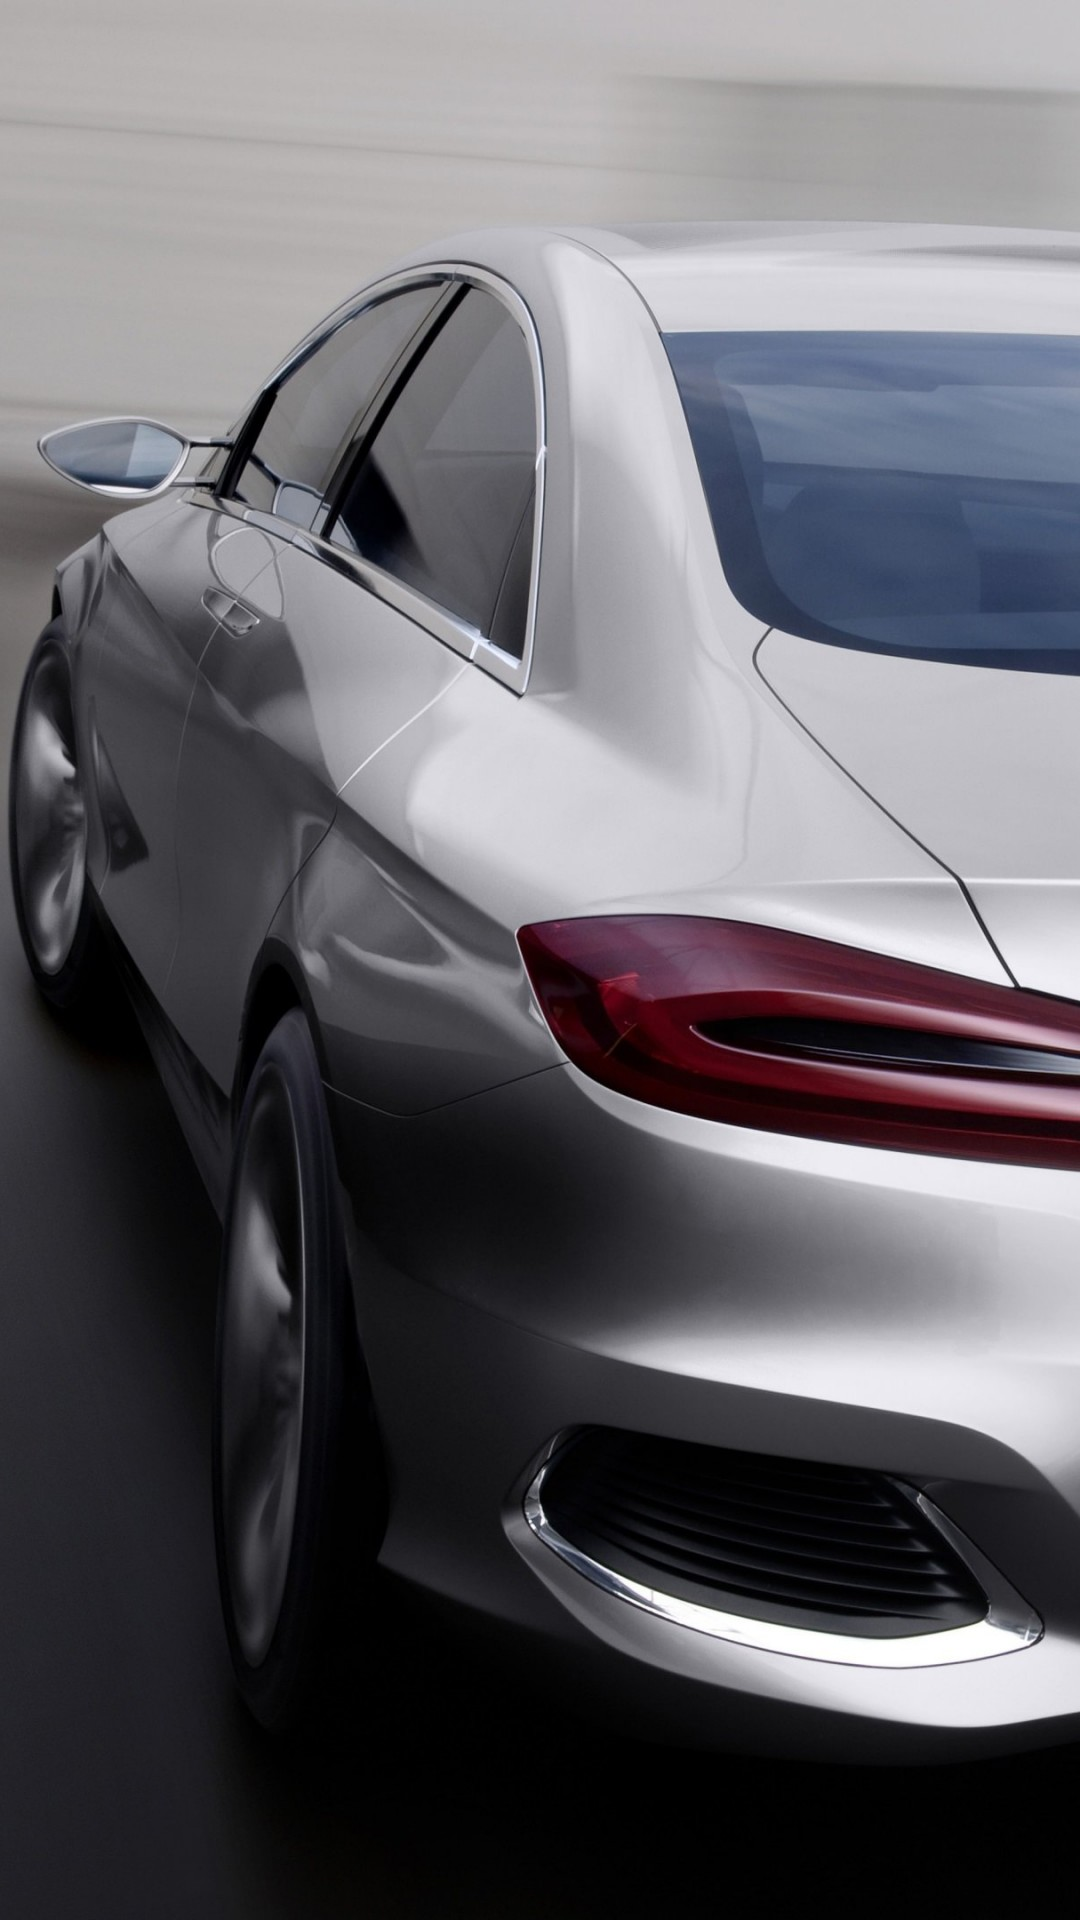 Mercedes Benz F800 Concept Rear View Wallpaper for Google Nexus 5